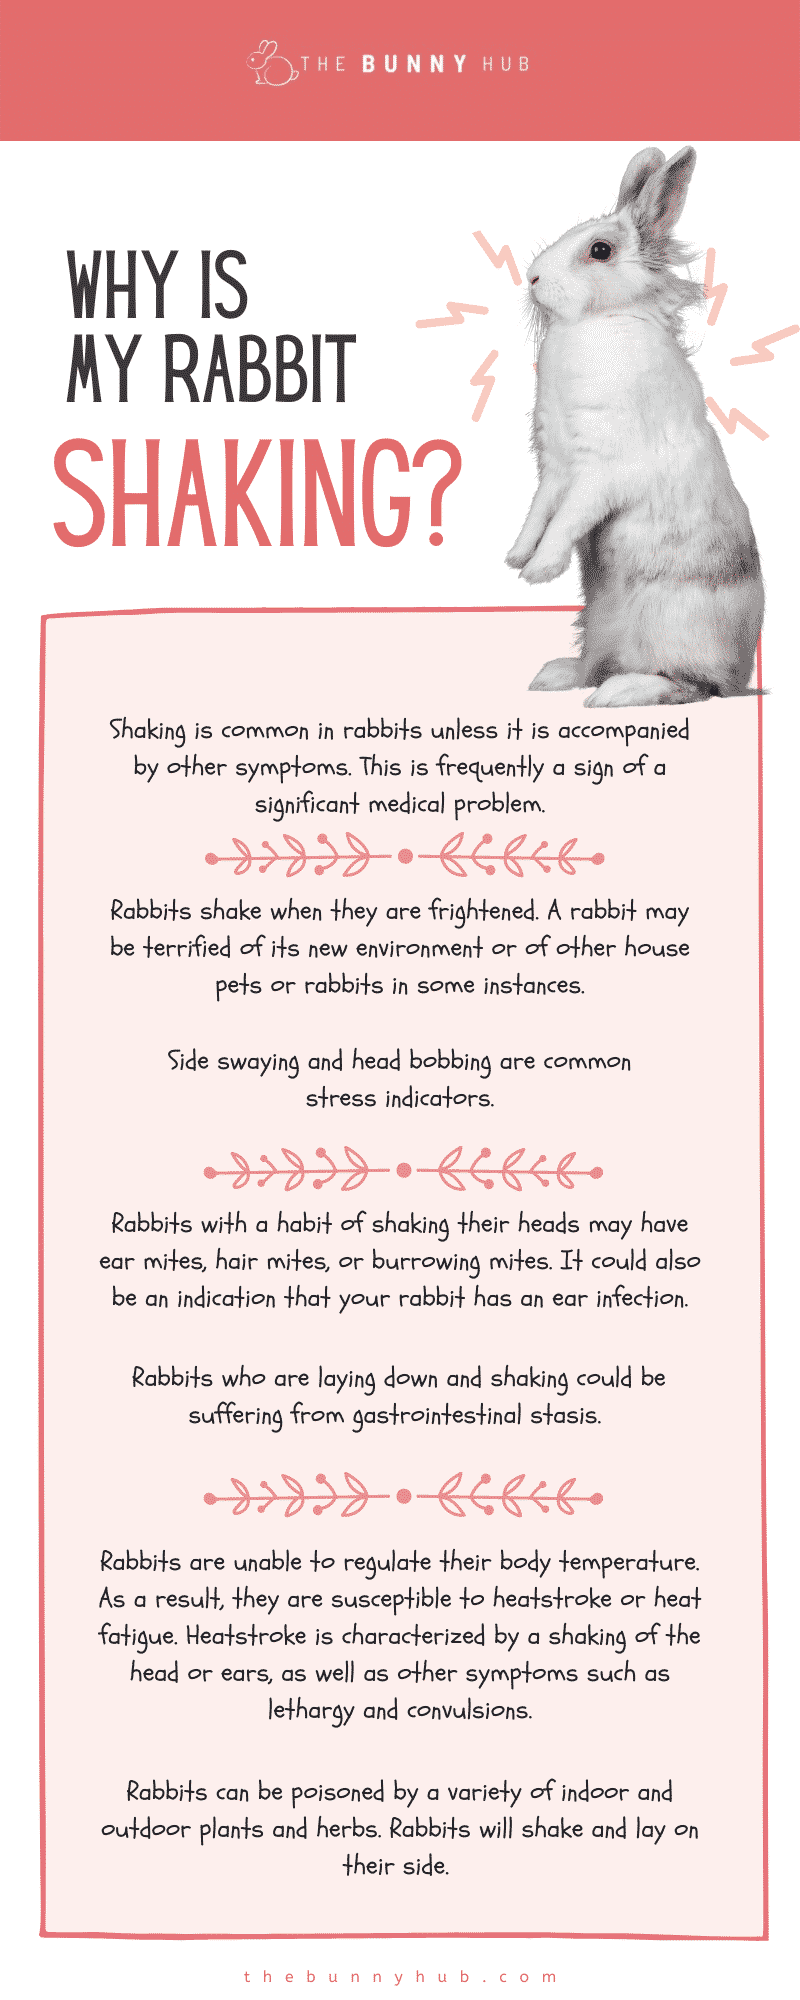 Why is my rabbit shaking infographic